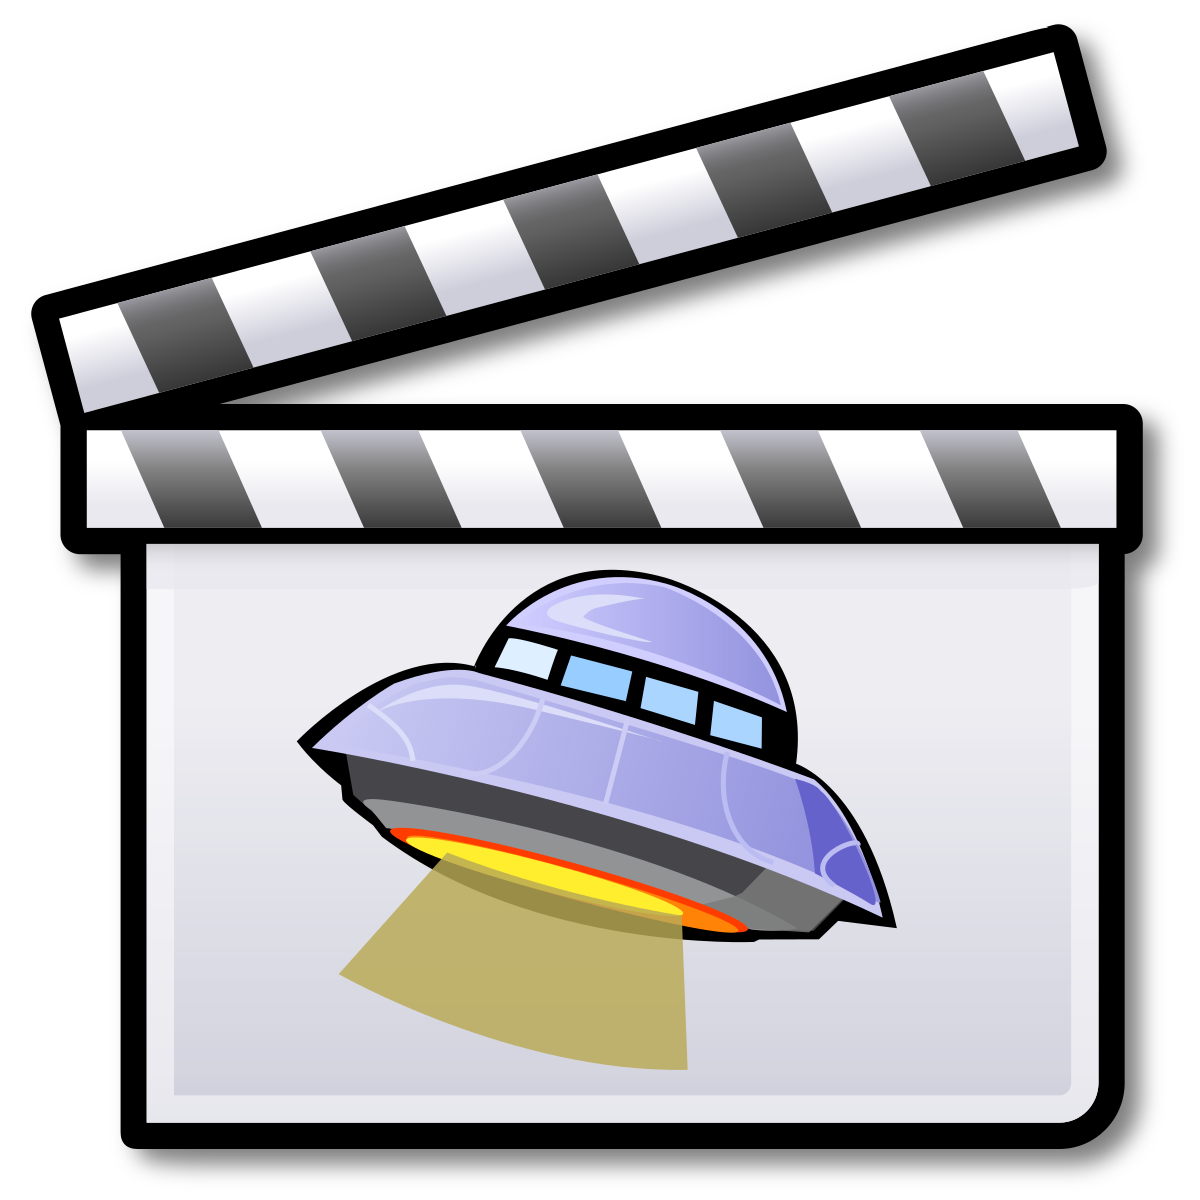 Alien clipart sci fi. Science fiction film wikipedia